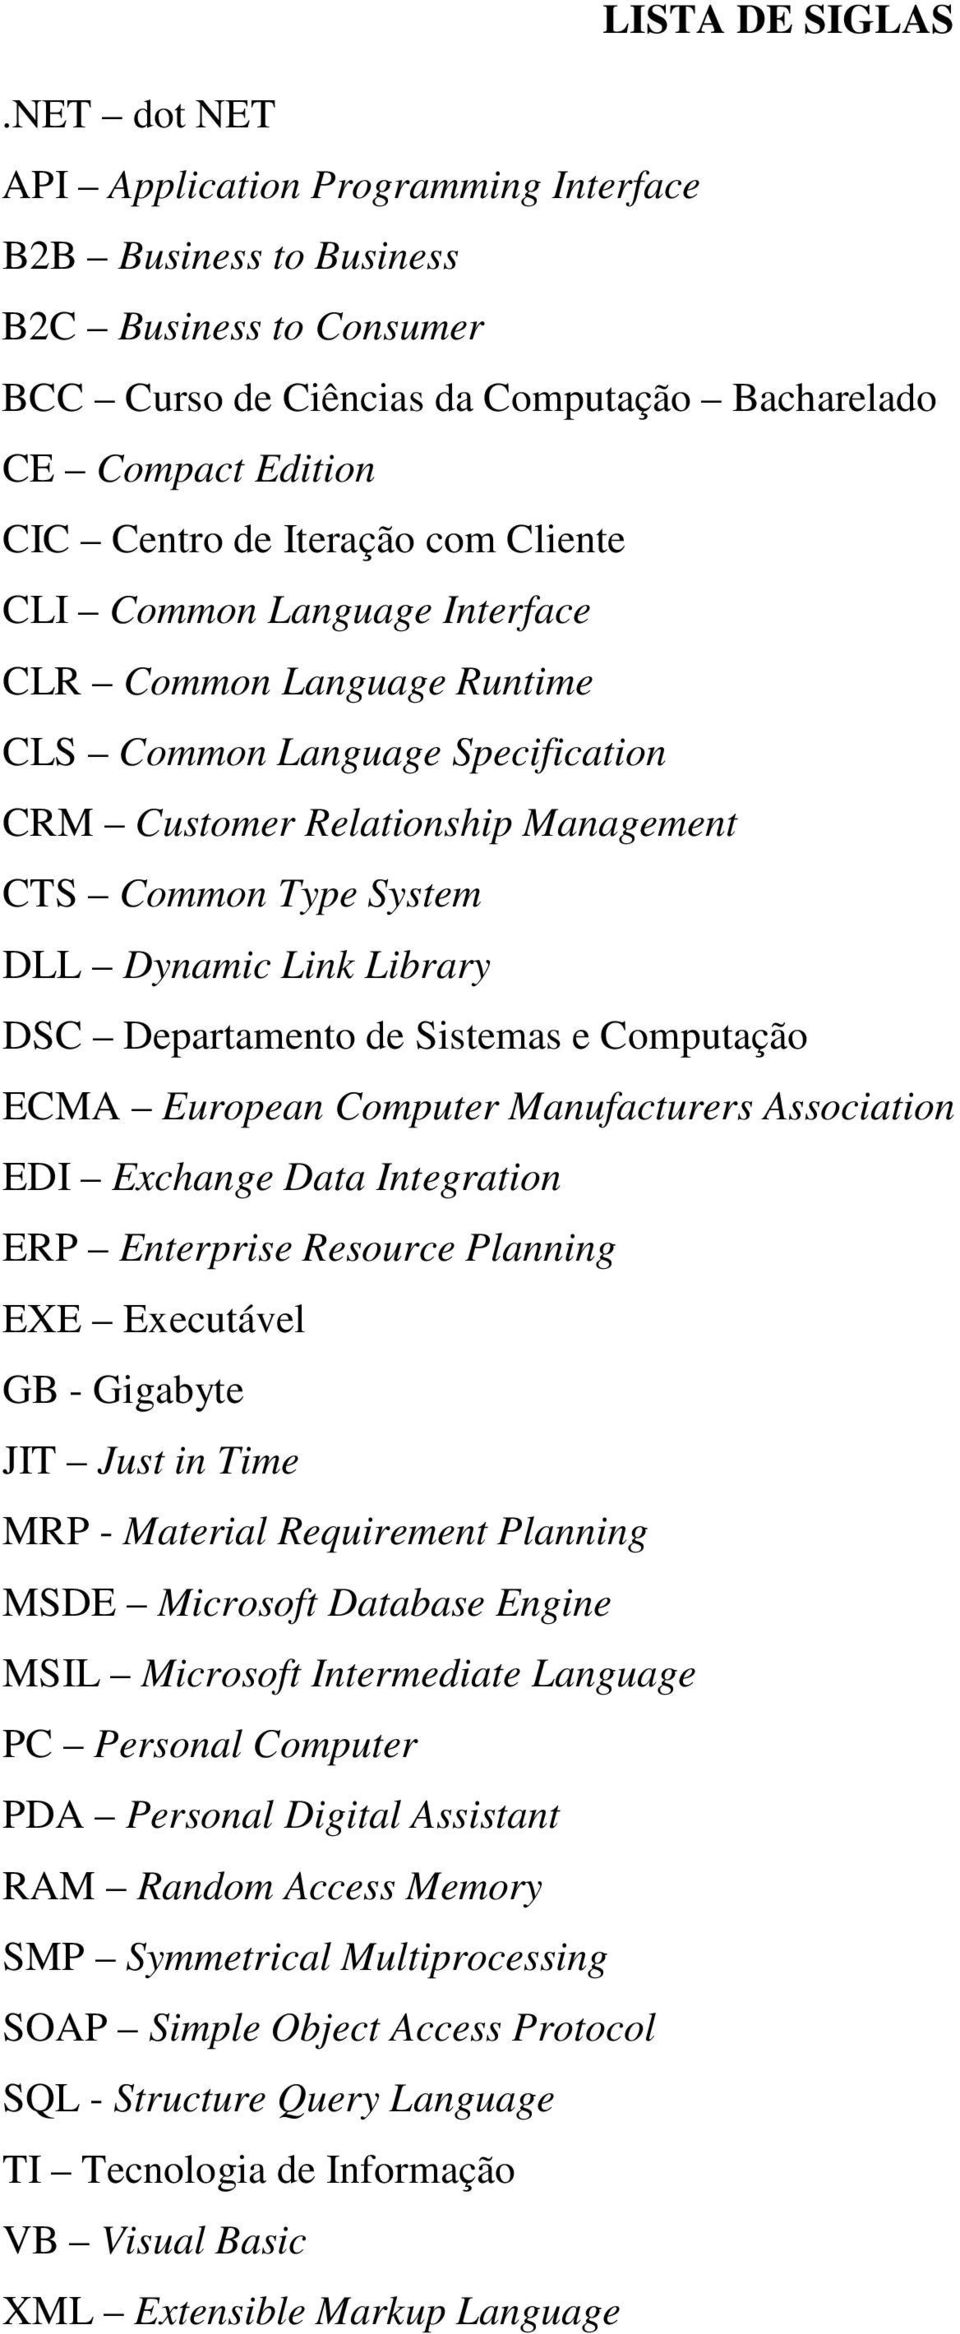 Cliente CLI Common Language Interface CLR Common Language Runtime CLS Common Language Specification CRM Customer Relationship Management CTS Common Type System DLL Dynamic Link Library DSC